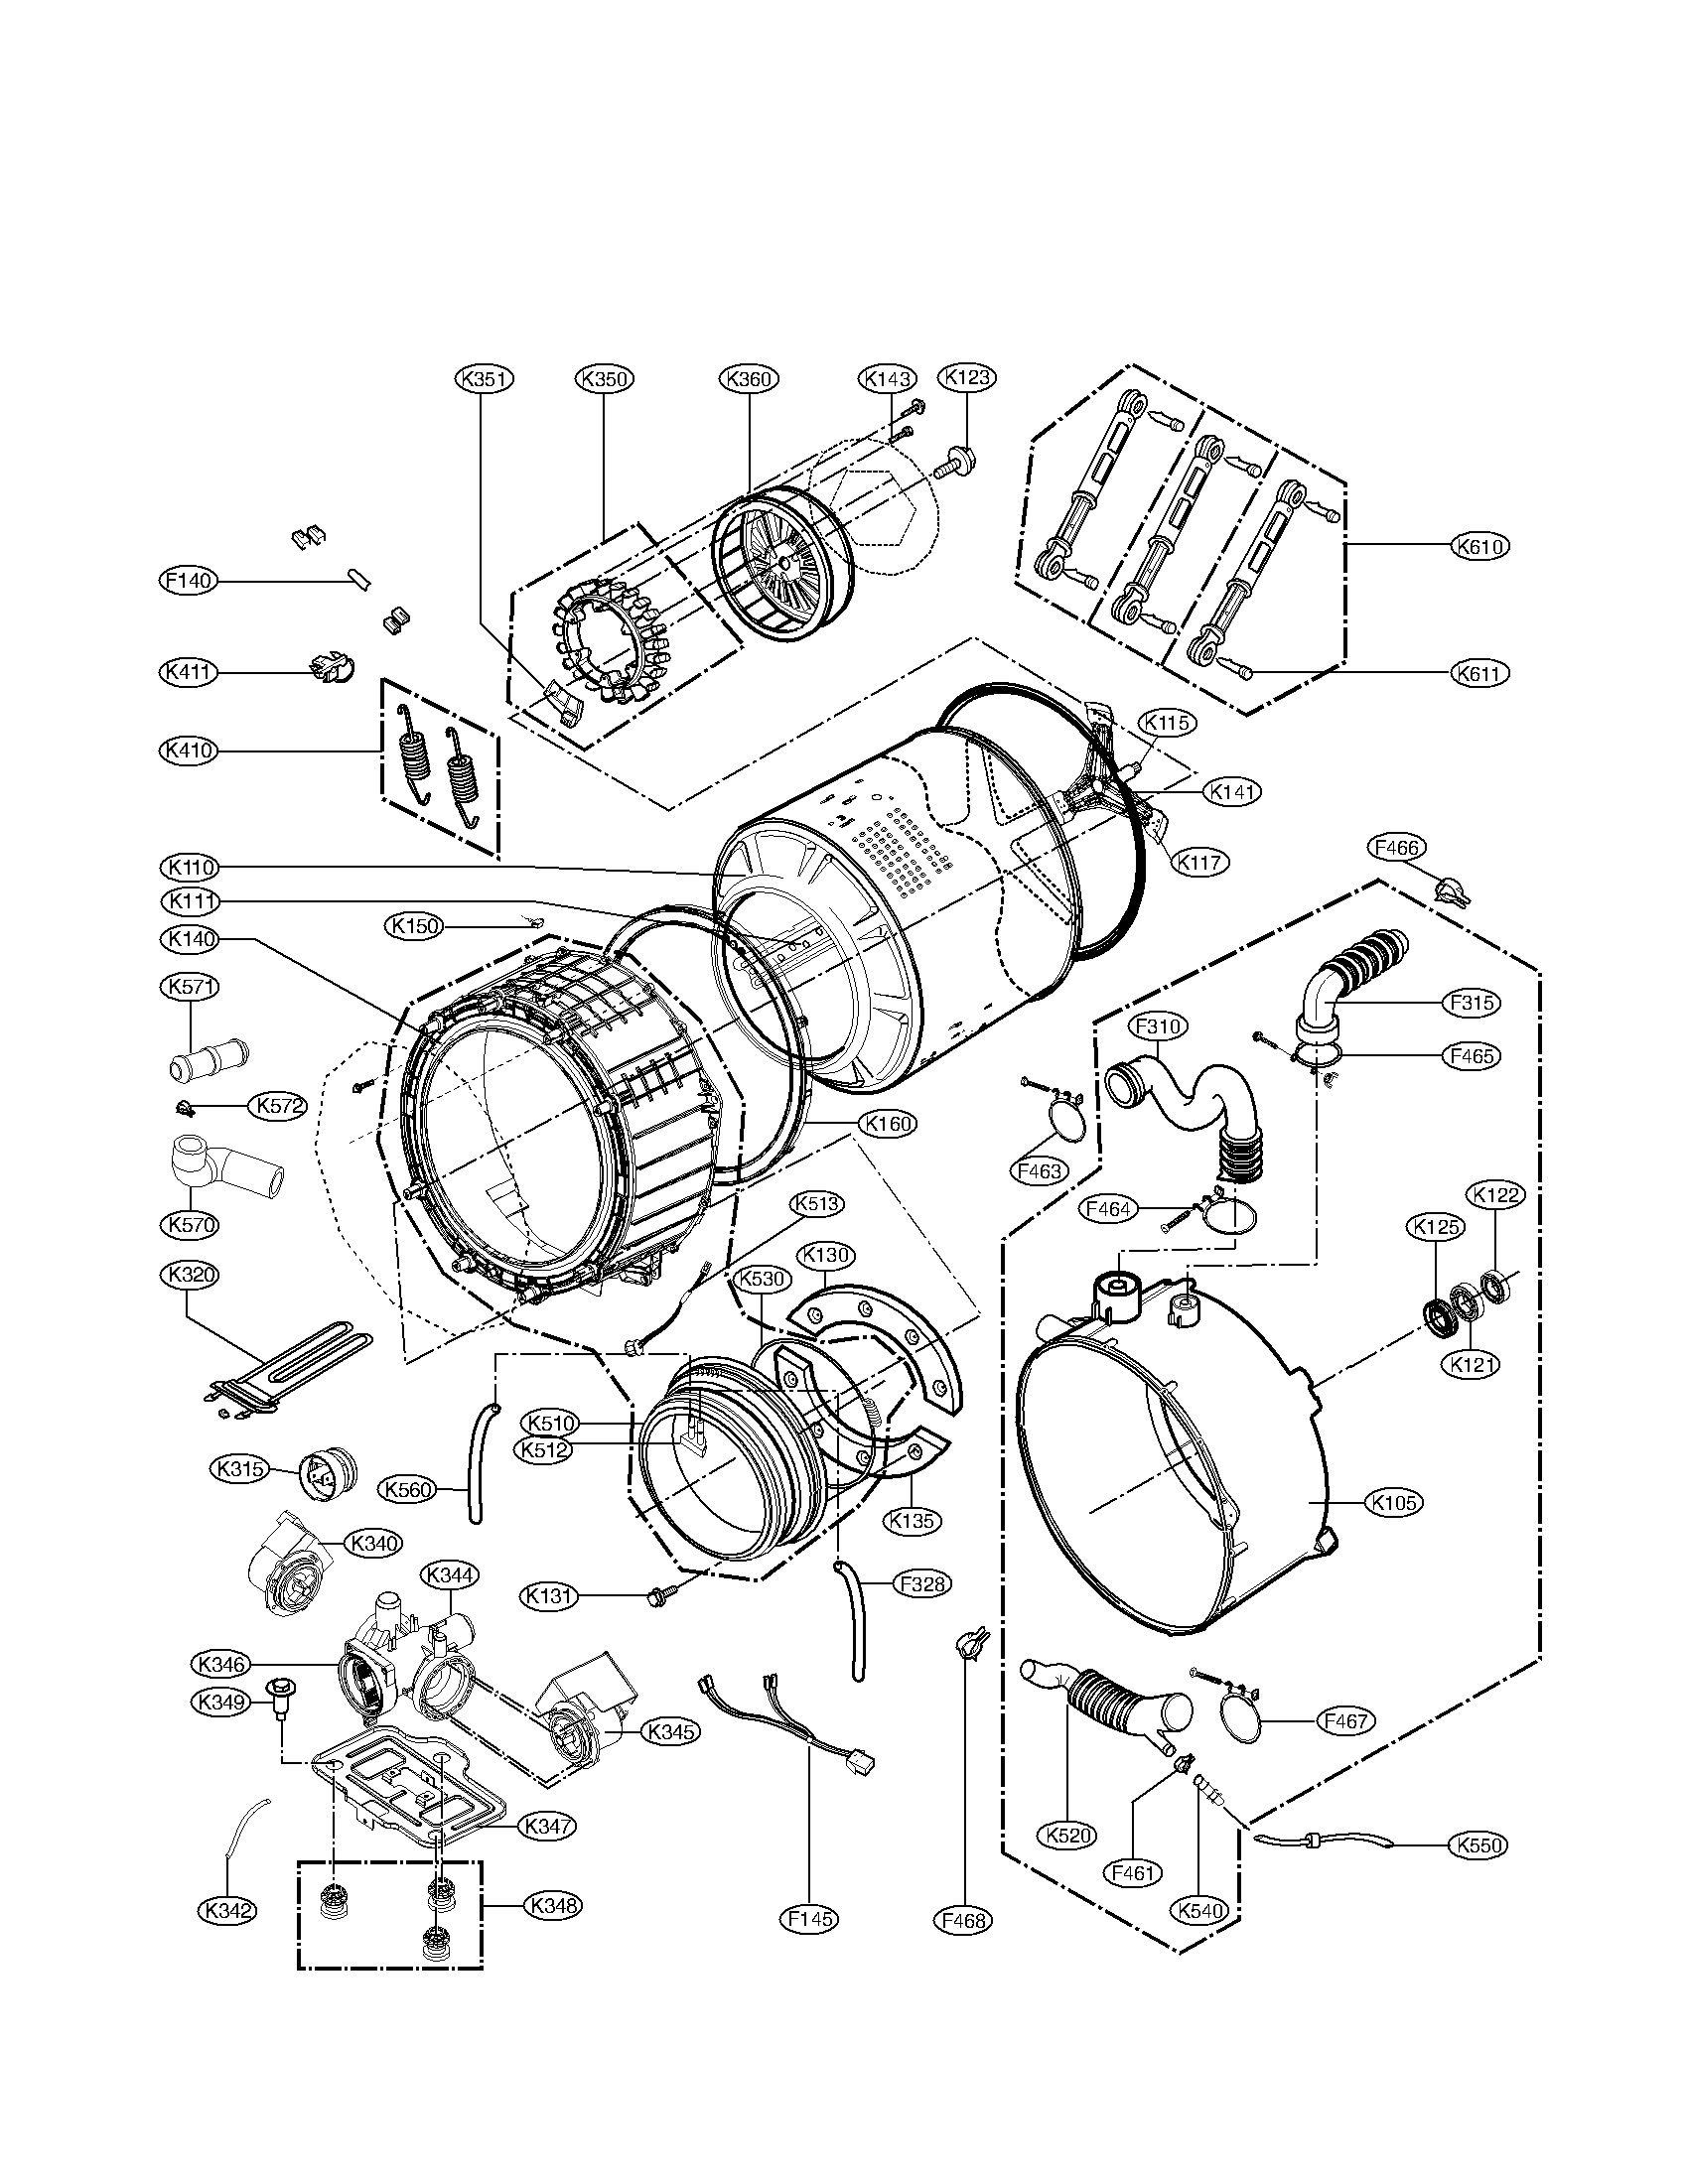 Drum And Tub Assembly Parts Diagram Parts List For Model 79642198900 Kenmore Elite Parts Washer Parts Searsparts Kenmore Elite Washer Kenmore Kenmore Elite